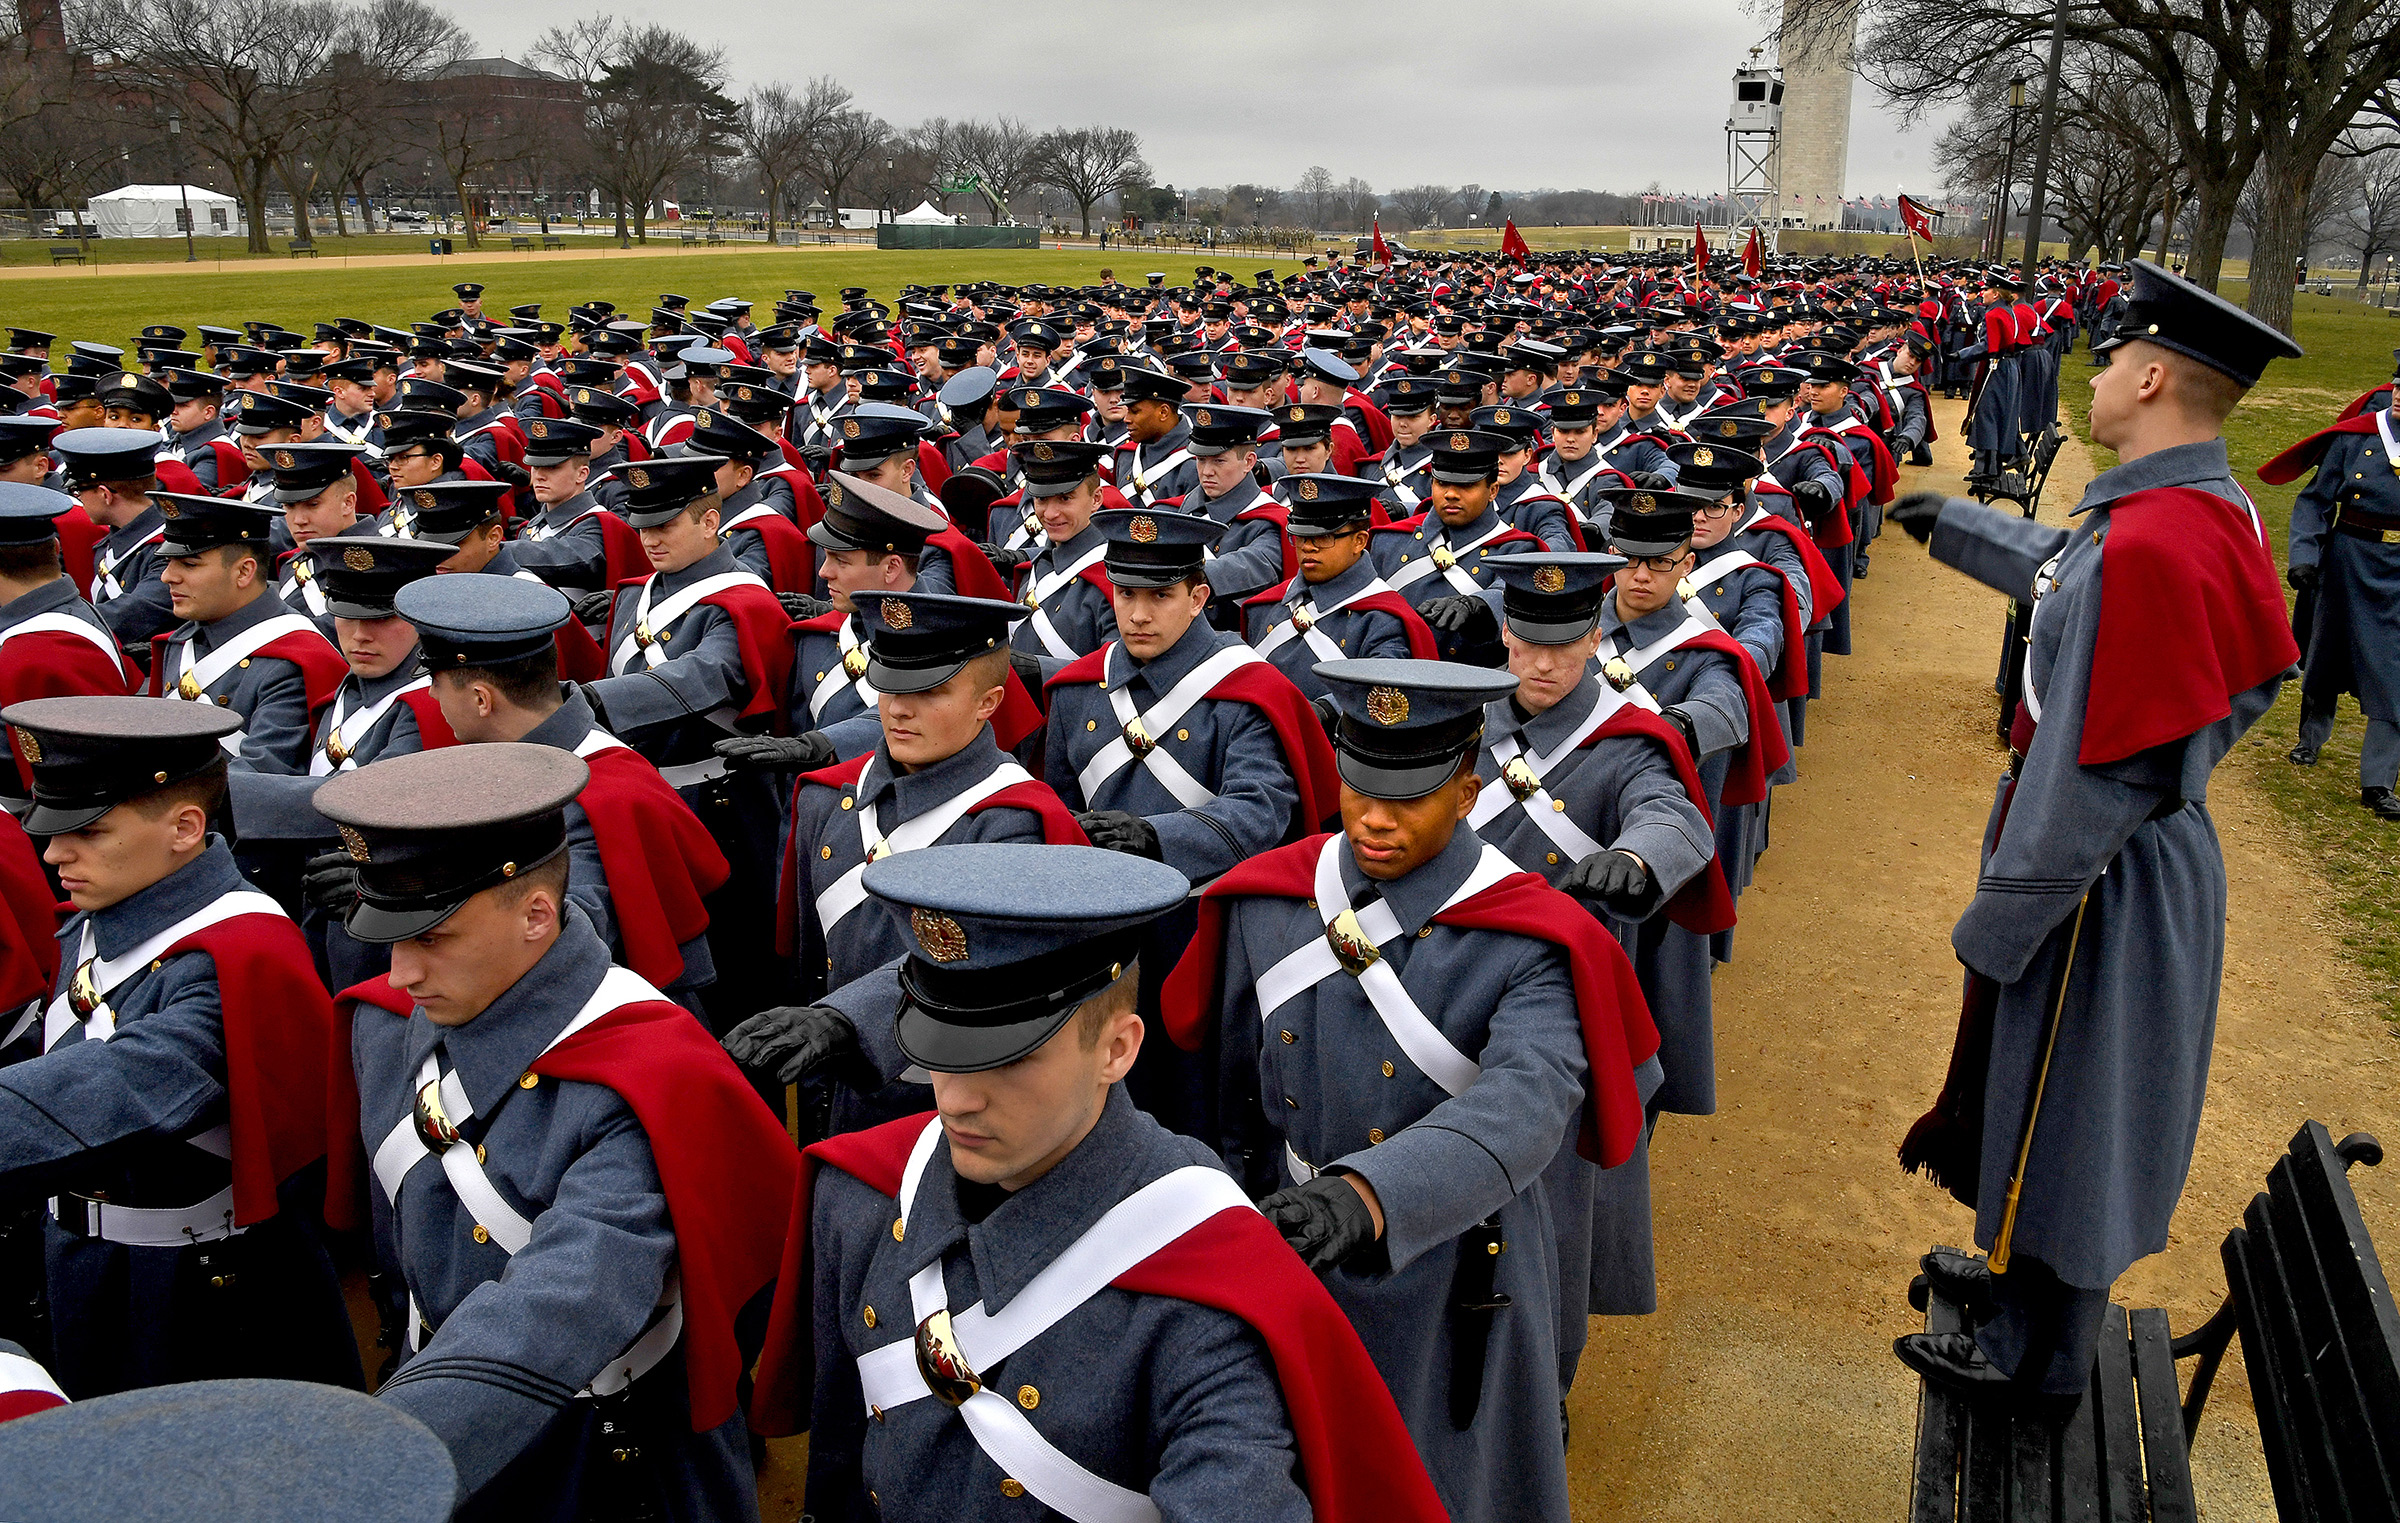 After cadets allege racism in news reports, state orders review of Virginia Military Institute's culture